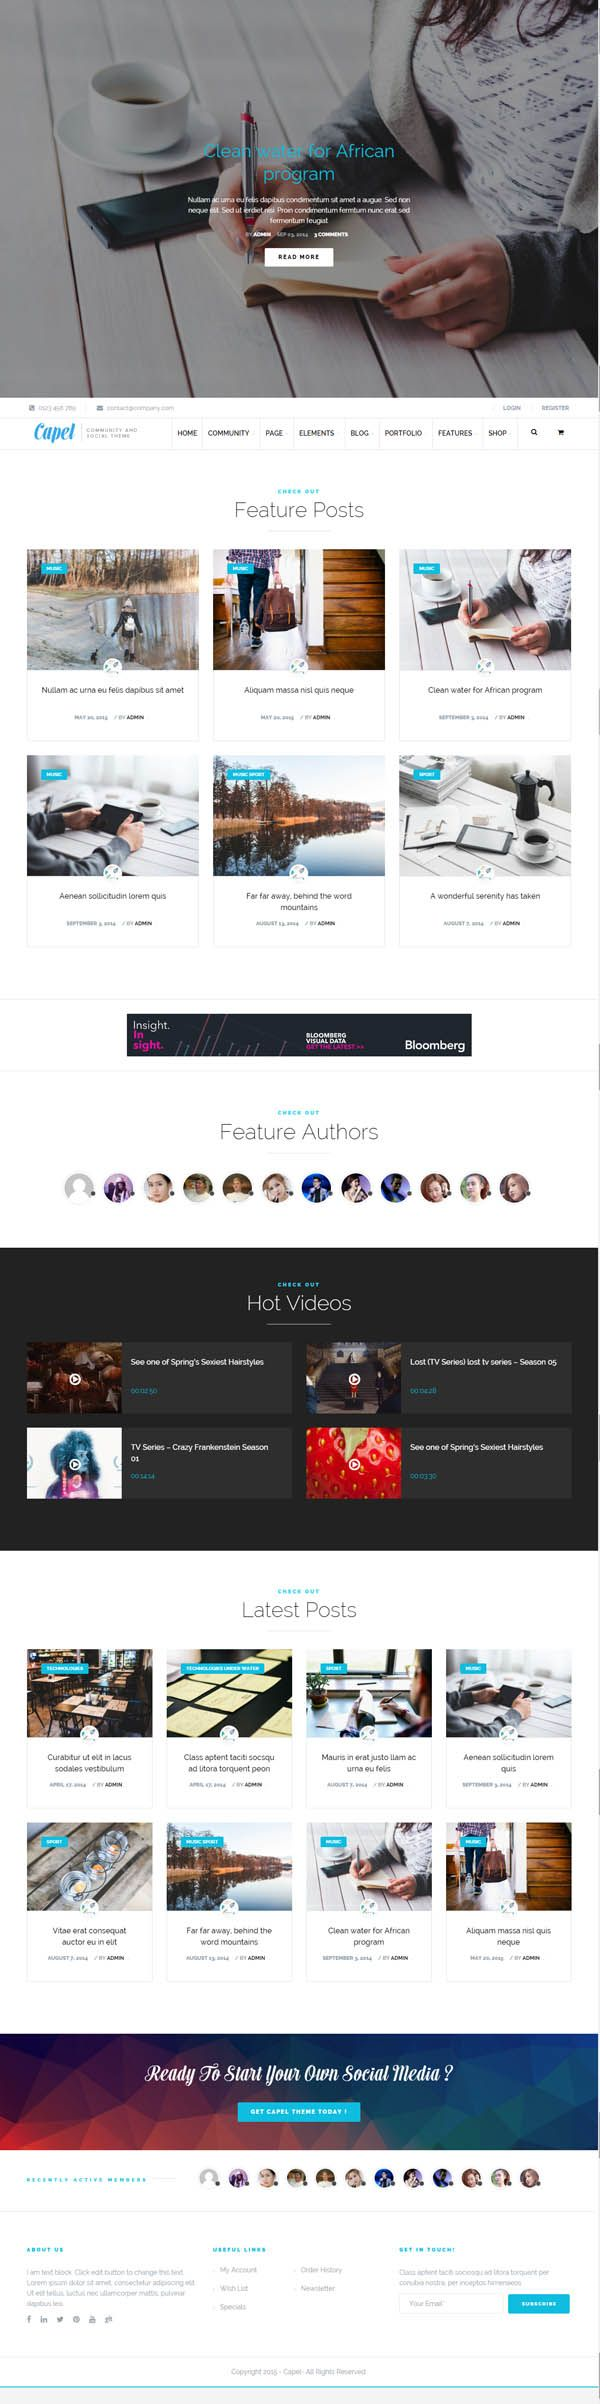 Capel : Multi-Purpose BuddyPress WordPress Theme | Wordpress Themes | Design Blog